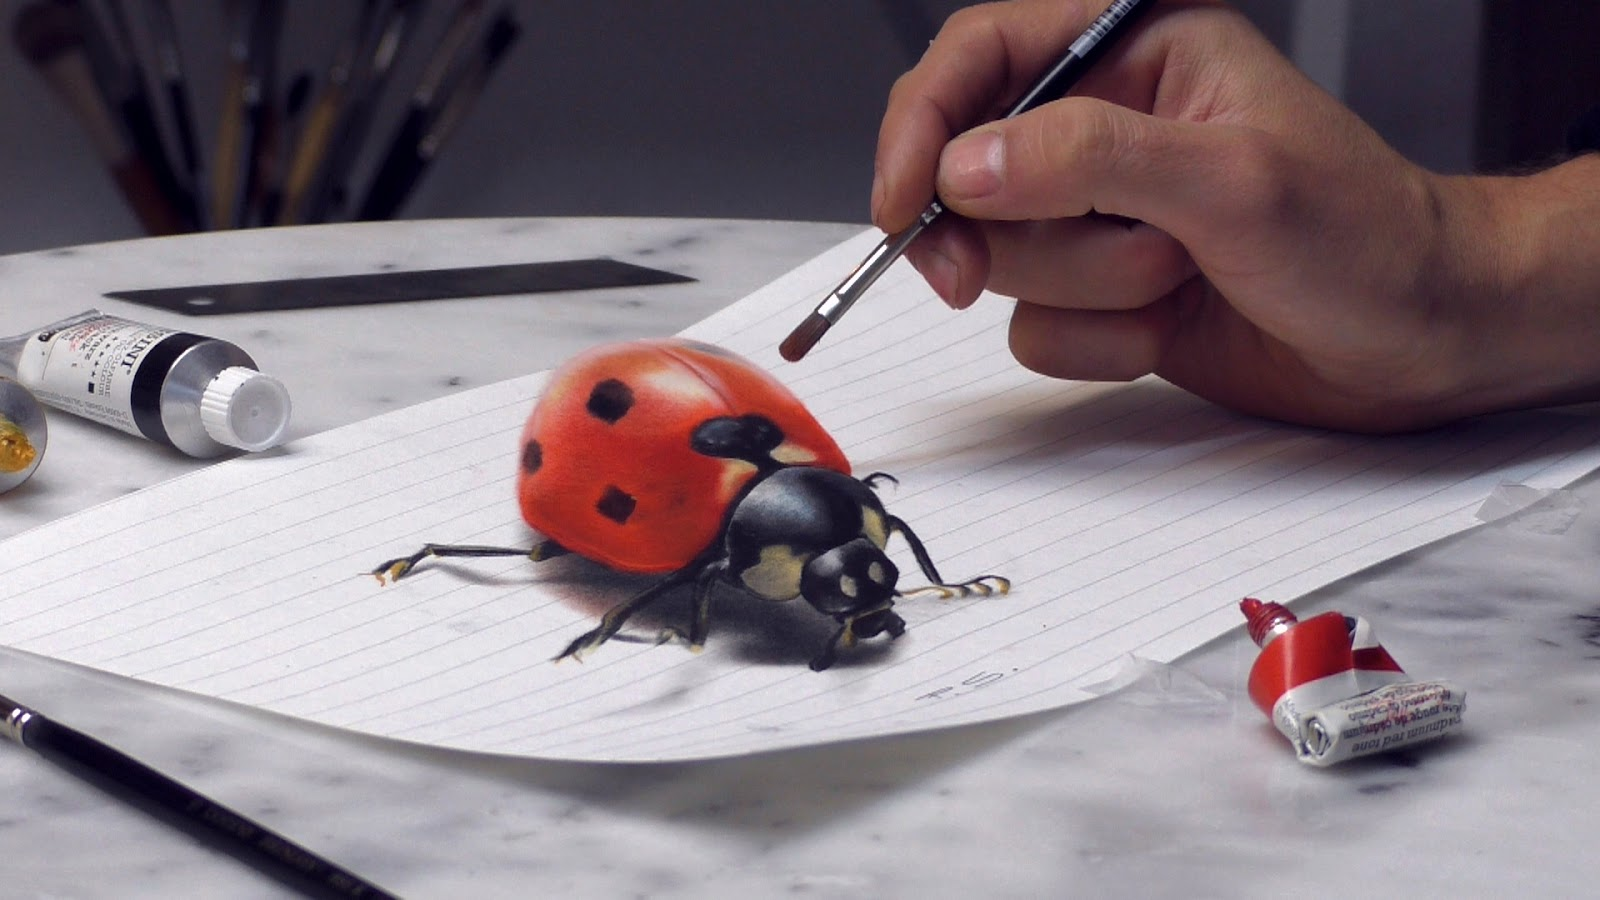 10-Ladybug-Stefan-Pabst-3D-Optical-Illusions-Drawings-and-Paintings-www-designstack-co